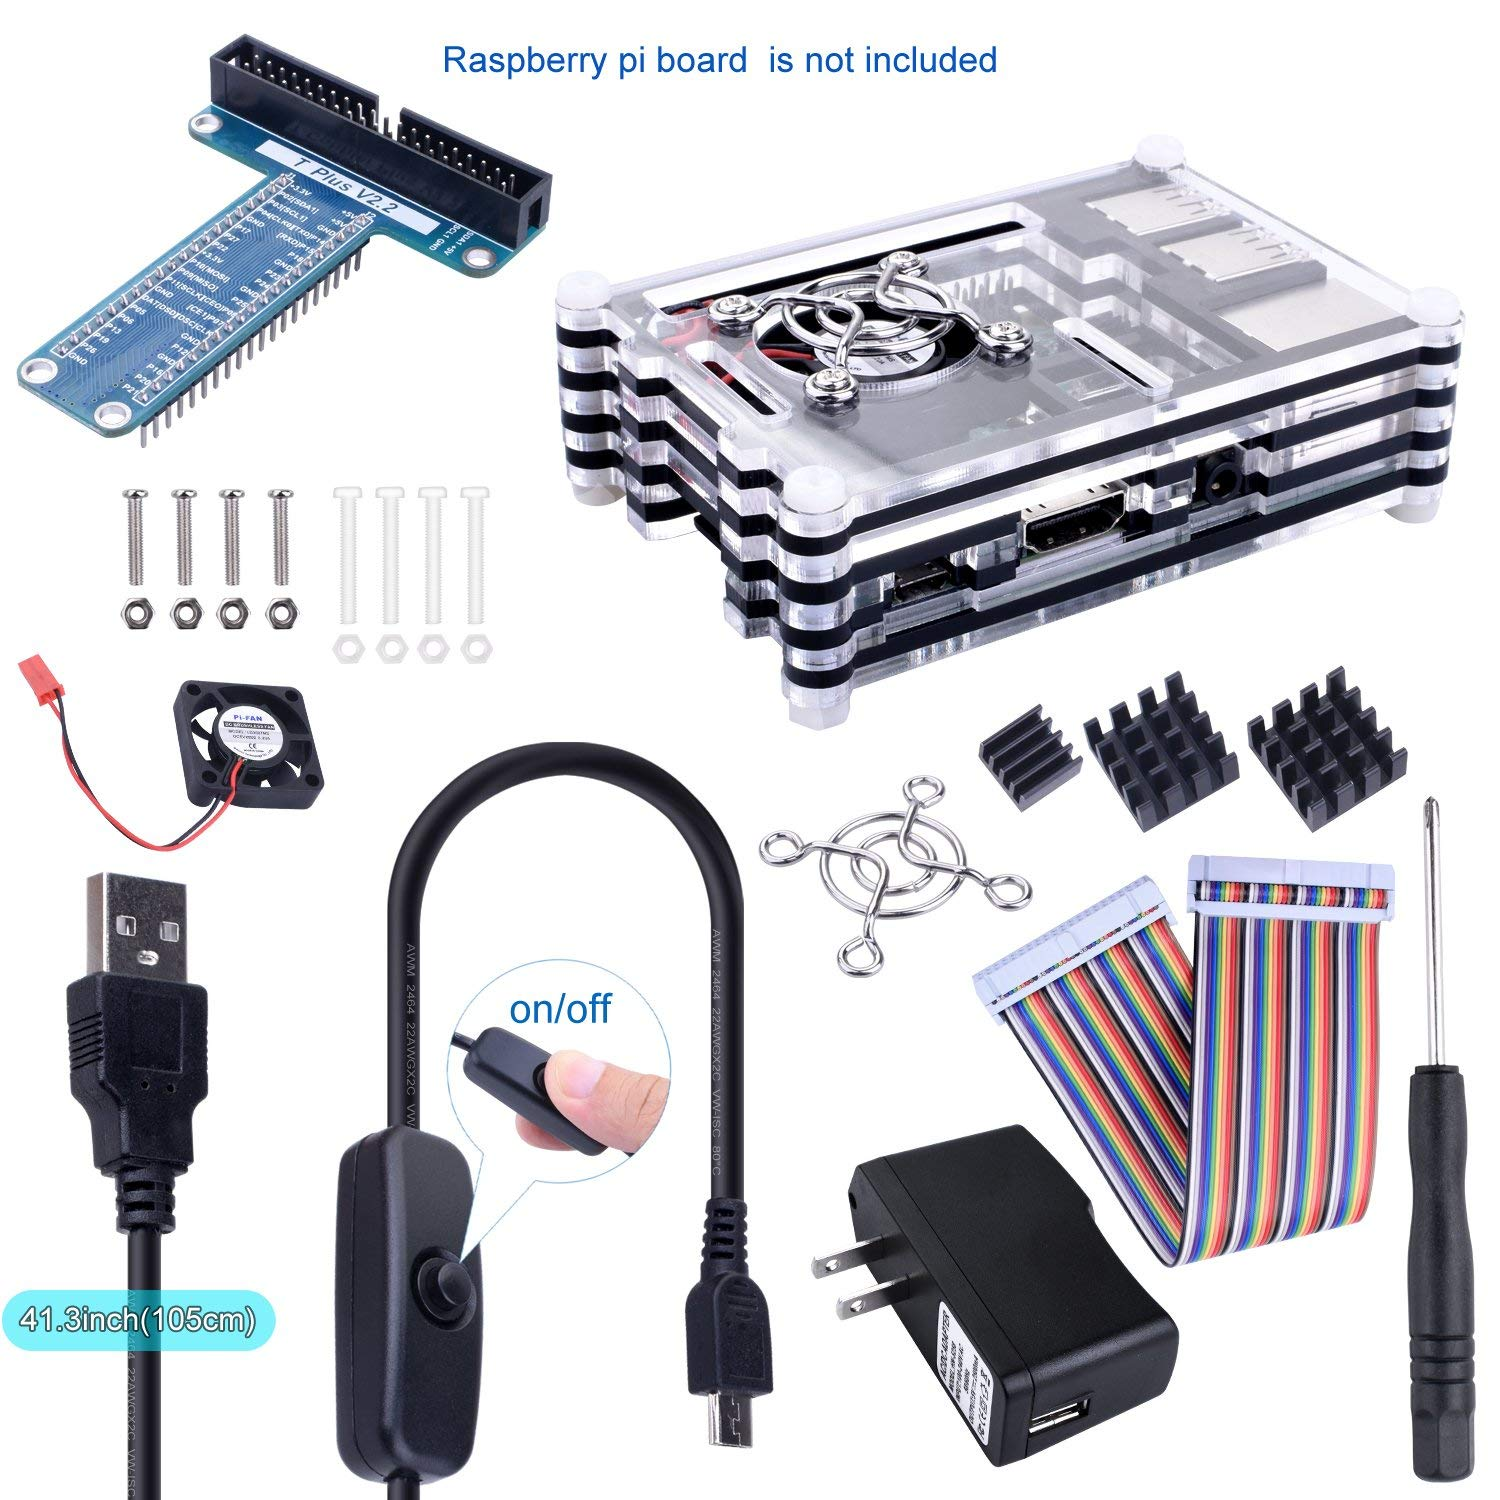 Kuman 9 in 1 Complete Kit for Raspberry Pi 3 2 Model B B+,9 Layer Case + 5V/2.5A Power Supply+Micro USB with On/Off Switch+GPIO Breakout Expansion Board+Ribbon Cable +Heatsinks+Fan Cooling+Fan Cover